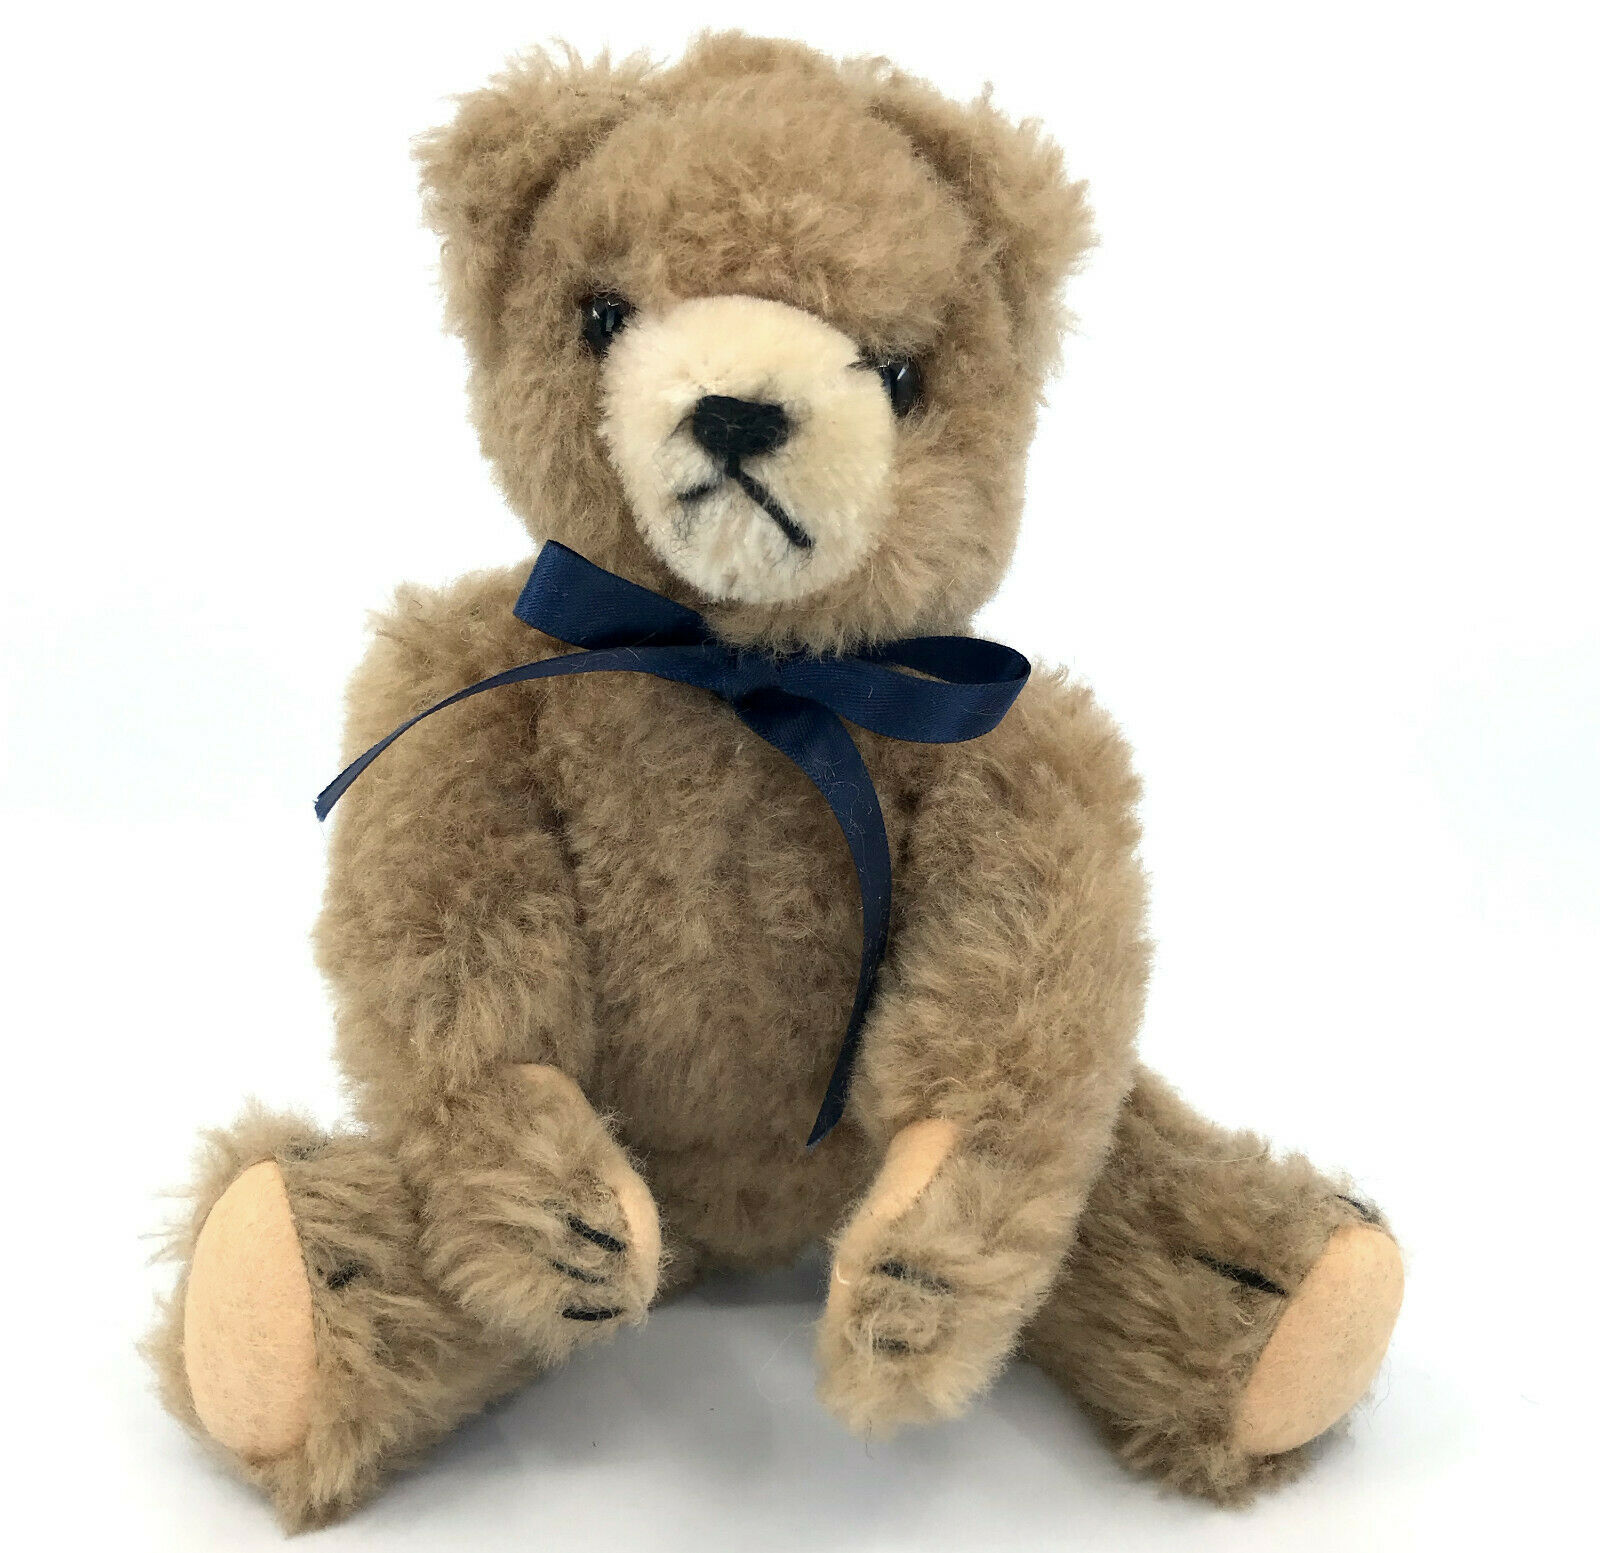 Vintage Dralon Plush Teddy Bear may be Hermann c1950s Squeaker 10in 25cm no ID